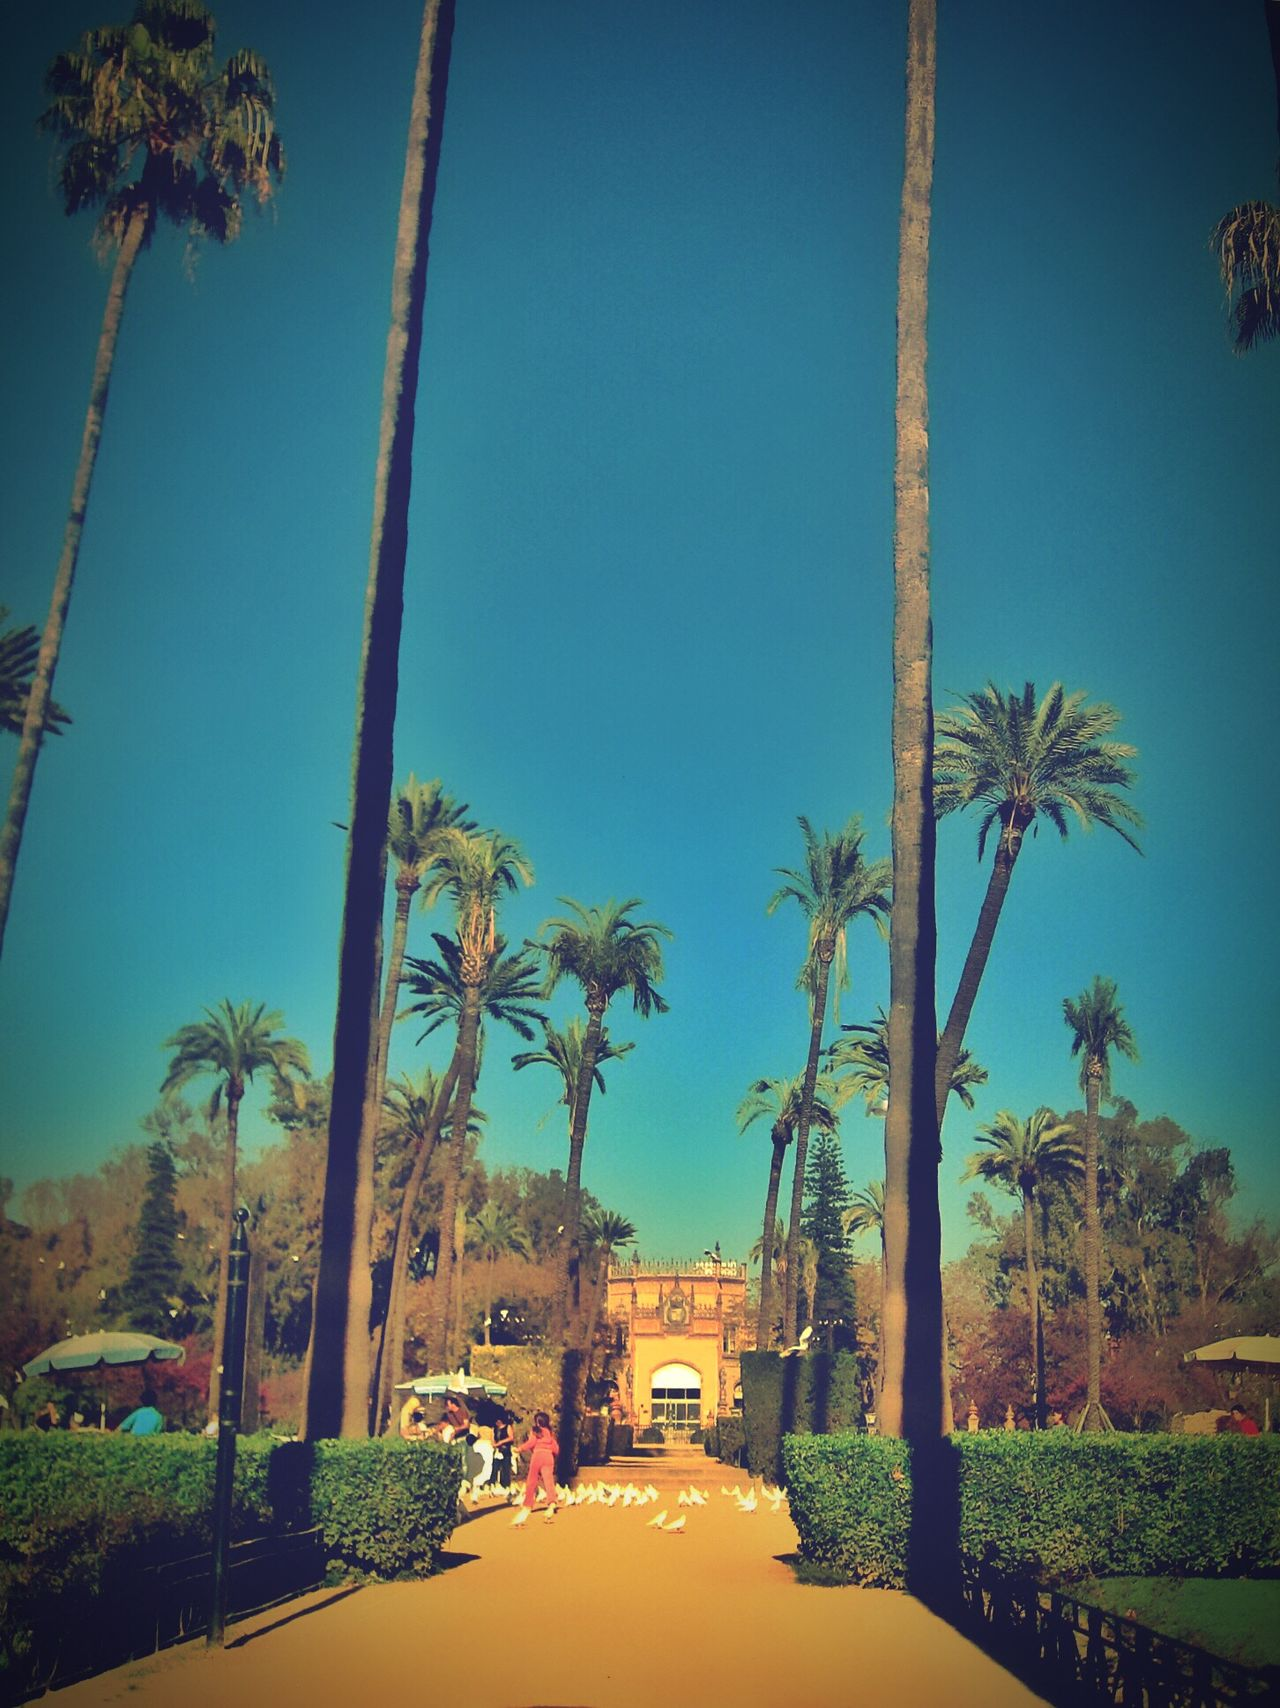 Poster It. Late post taken in Sevilla Spain. Urban Landscape Photography Poster It Palm Trees Sunny Blue Sky Clear Sky SPAIN Landscape Vertical Symmetry People Birds Calm